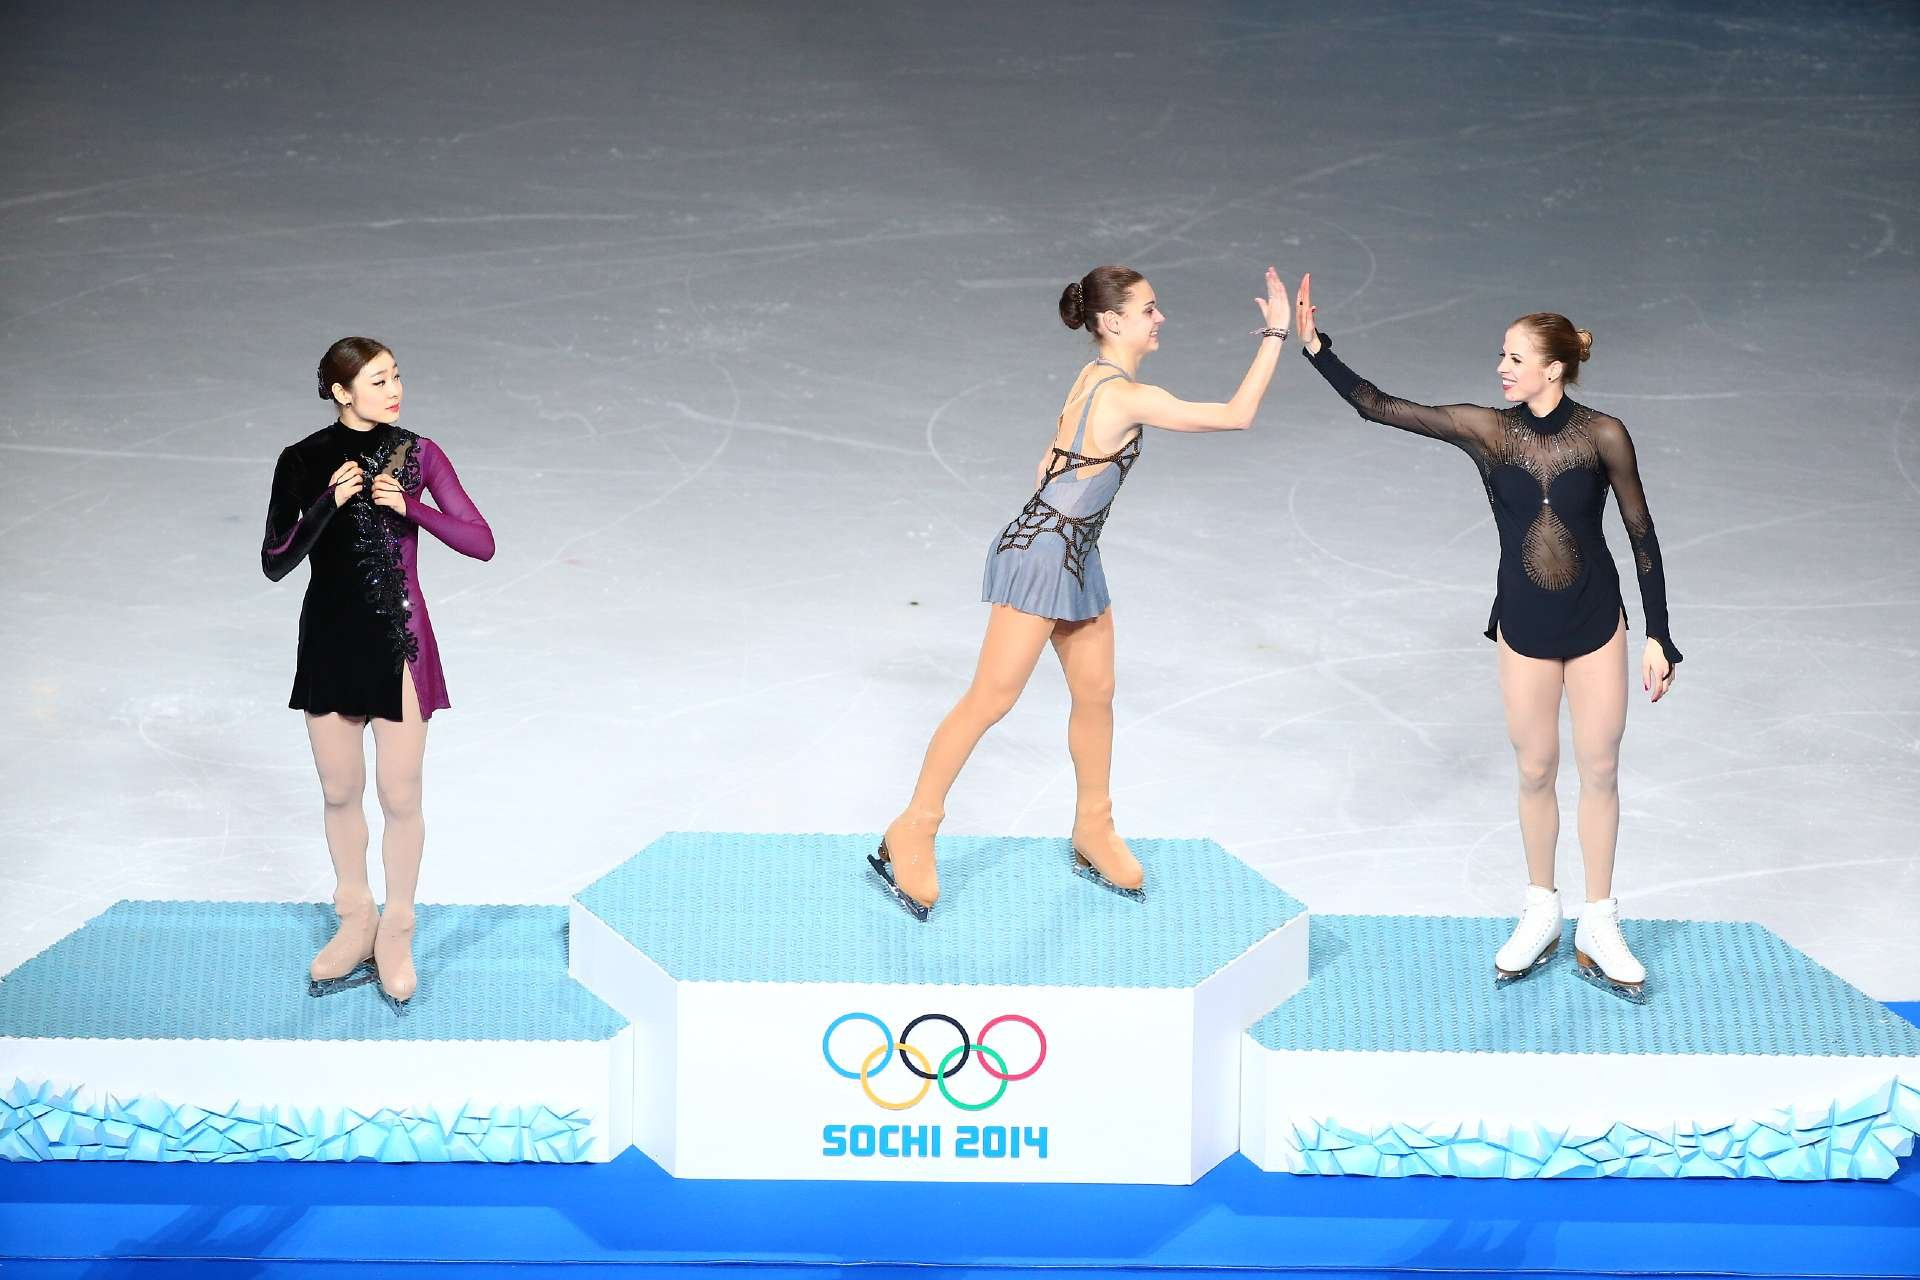 Adelina Sotnikova gave Russia its first gold medal in women's Olympic figure skating, outscoring silver medalist Yuna Kim of South Korea and bronze medalist Carolina Kostner of Italy.